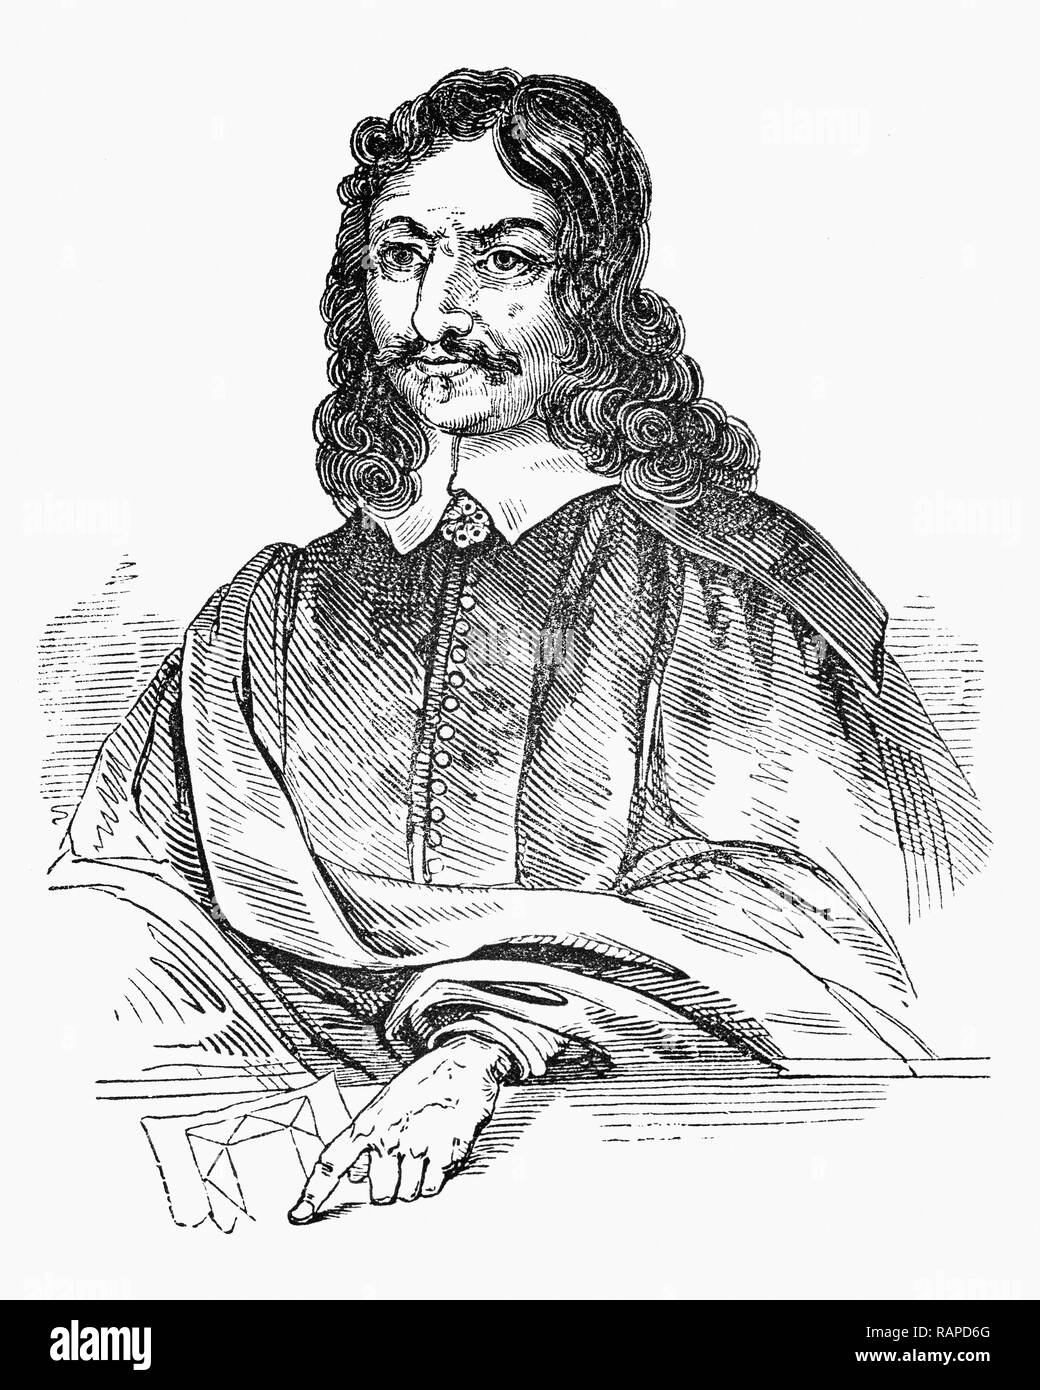 William Lilly (1602-1681), an astrologer  is described as a genius having developed his stature as the most important astrologer in England through his social and political involvement, as well as his impact on the astrological tradition.   In 1647, during the English Civil War, he published Christian Astrology, a huge compendium of astrological technique, the first of its kind to be printed in the English language rather than Latin and by 1659, Lilly's fame was widely acknowledged and his annual almanac was achieving sales of around 30,000 copies a year. - Stock Image